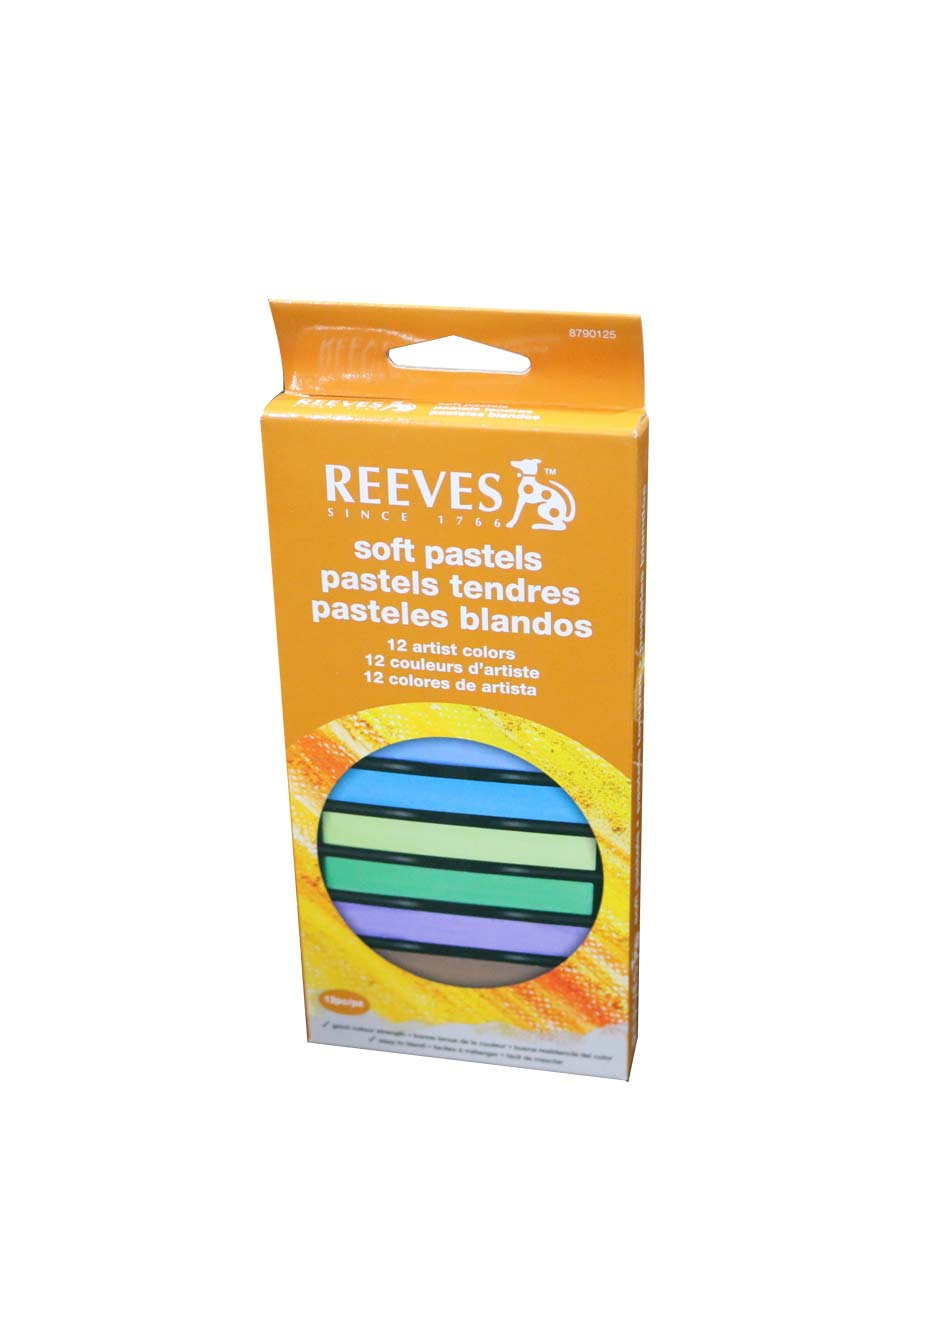 REEVES-SOFT-PASTELS-12-COLORS